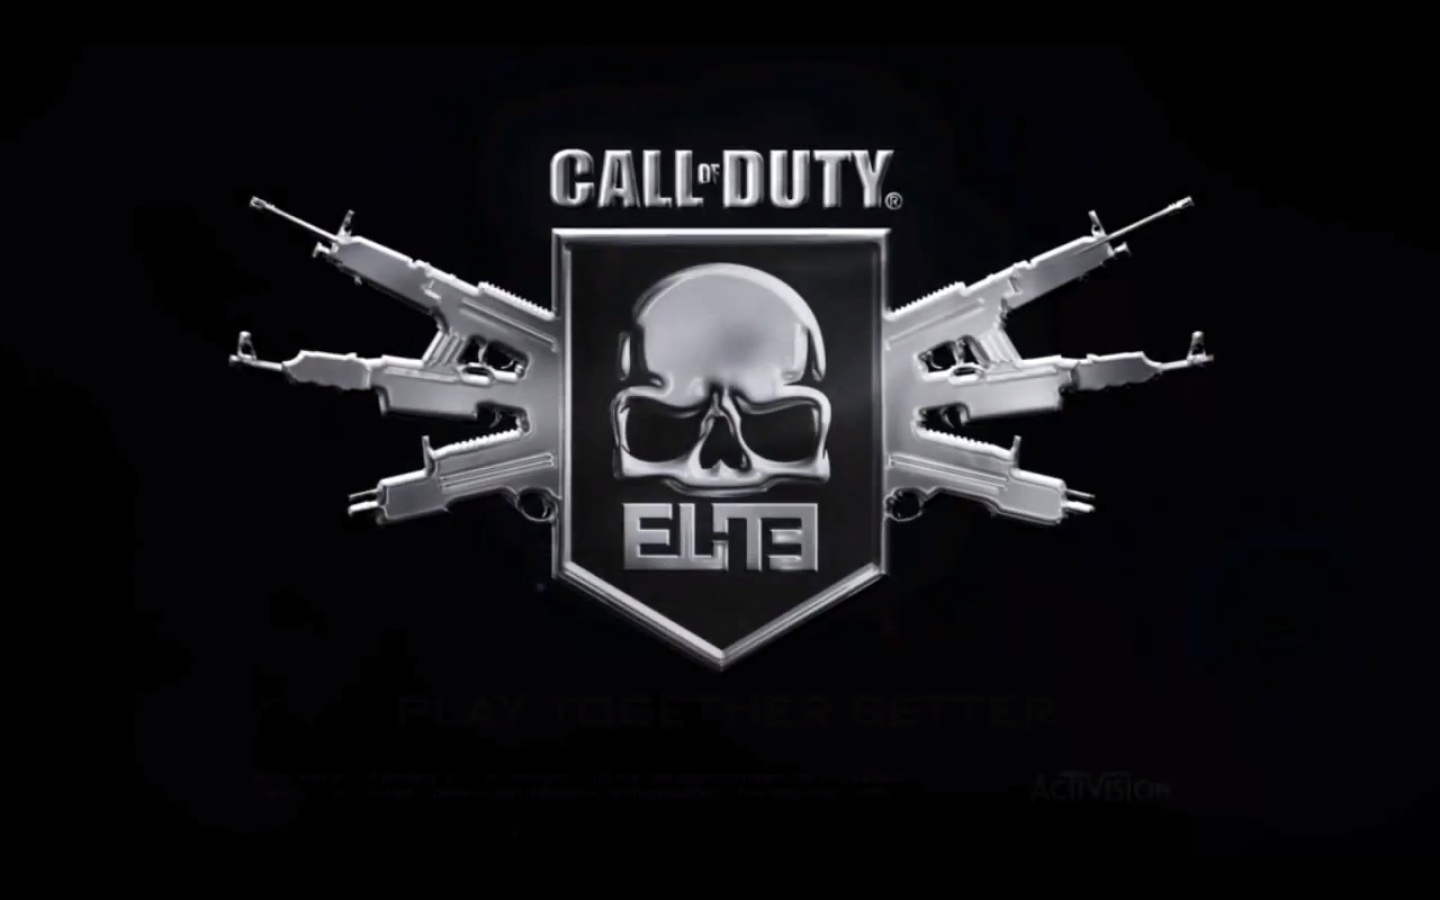 Call of Duty Elite - now free in Black Ops 2